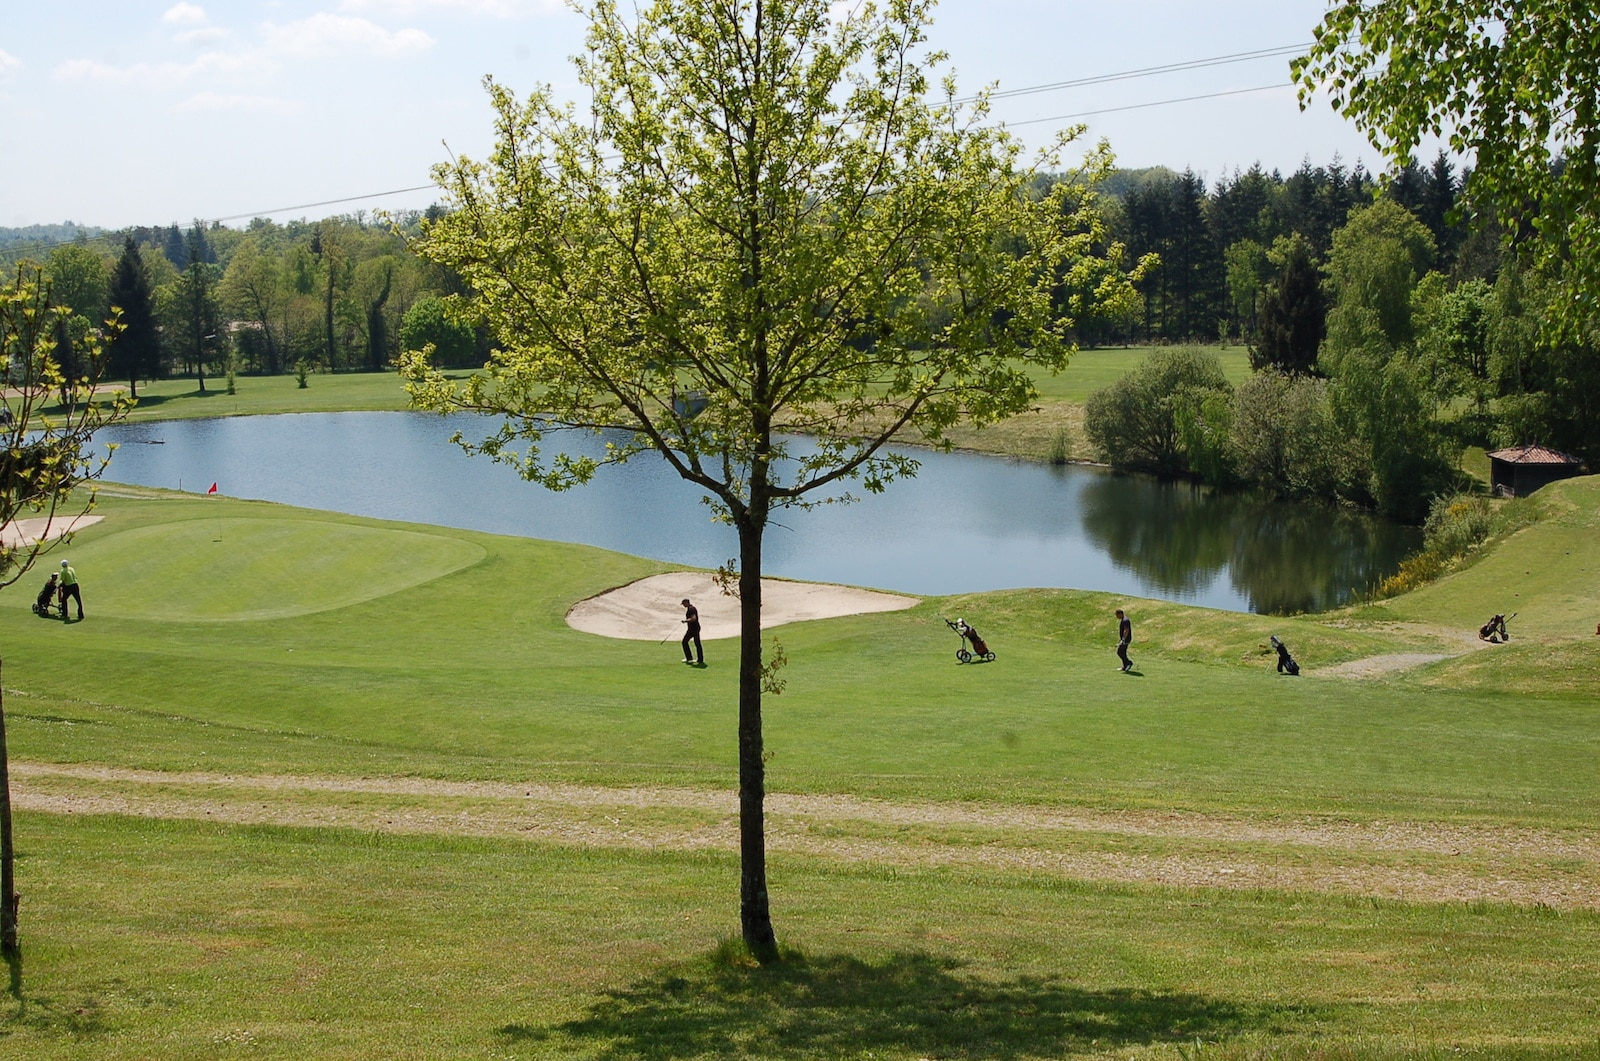 Golf International de la Prèze